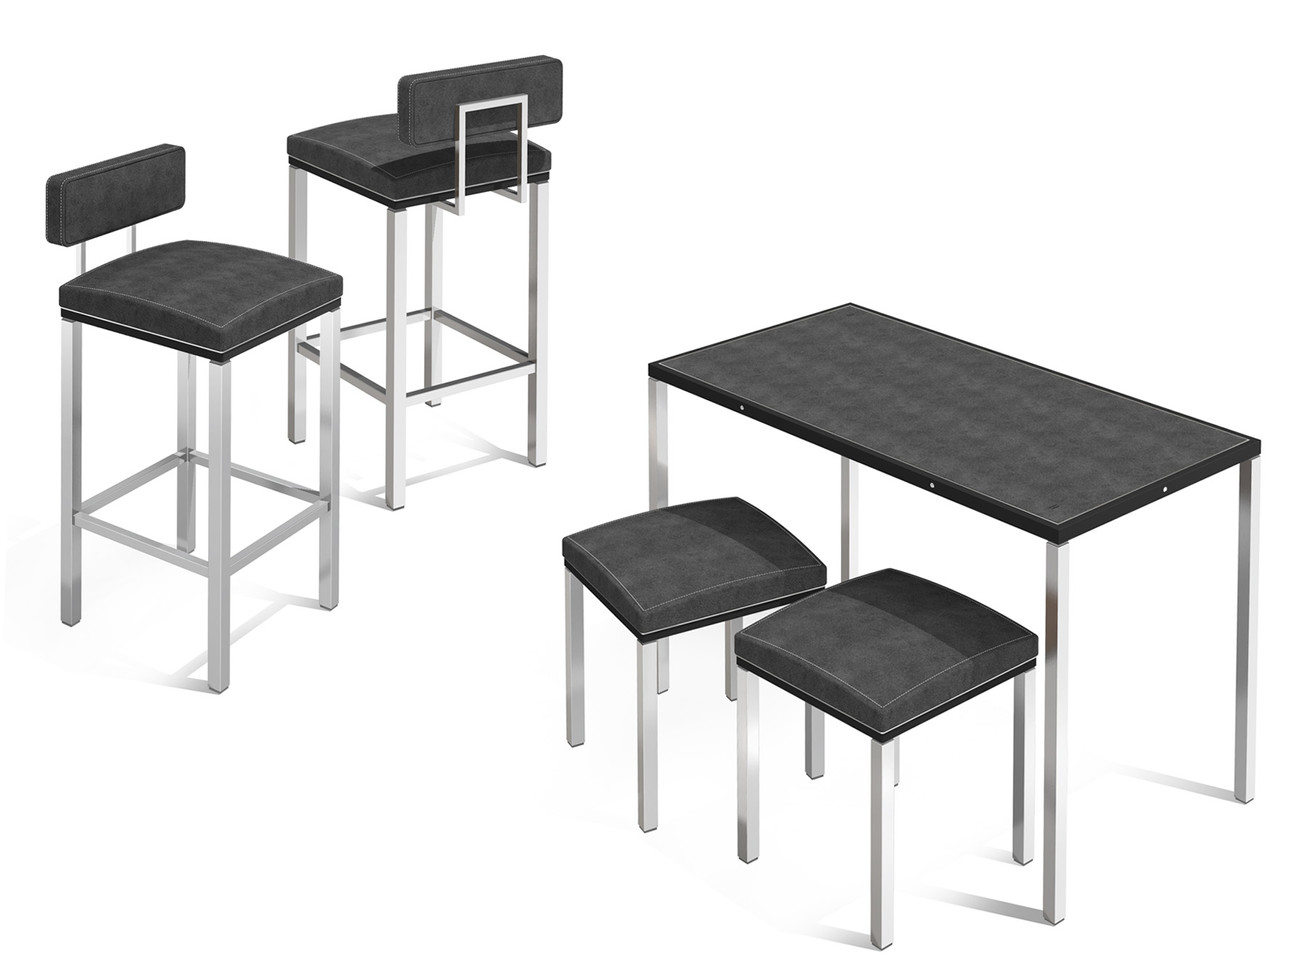 Corner Concept Furniture - Generation 2 - Bar Stools & Sales Table + stools